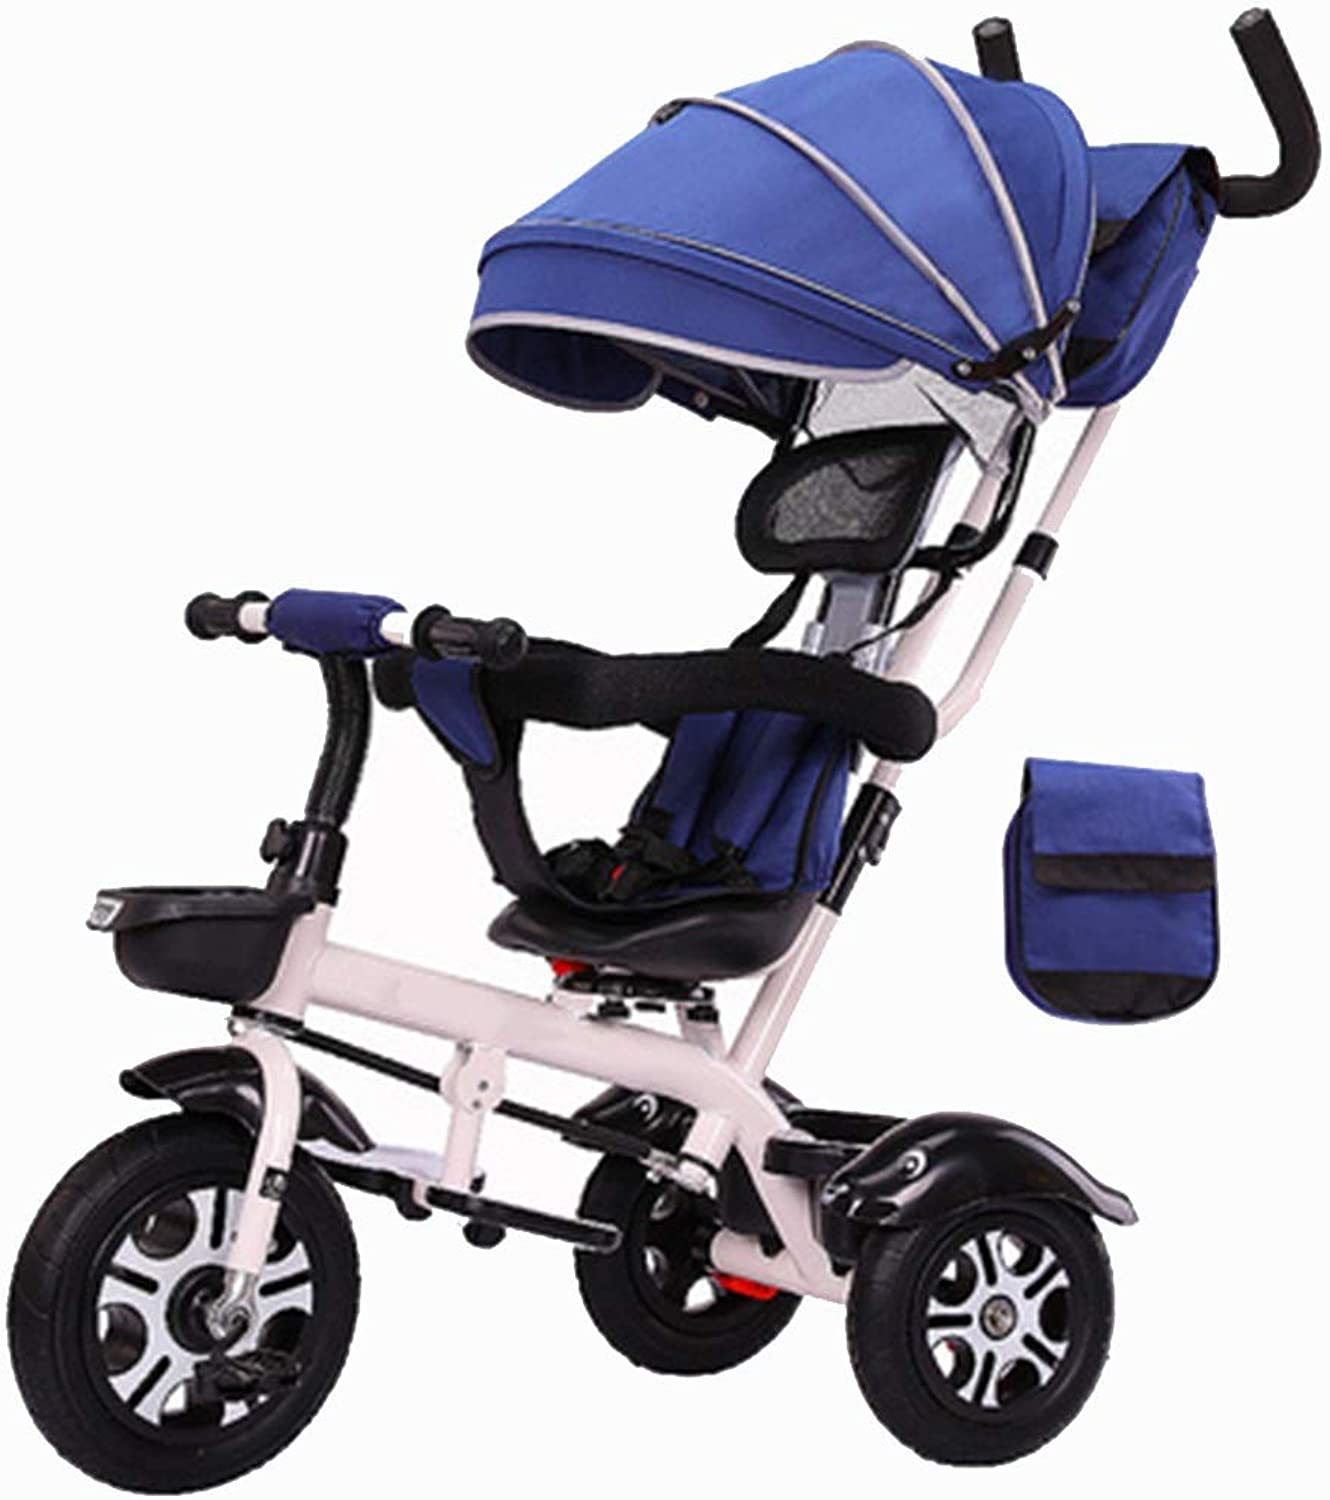 YUMEIGE Trikes Kids Tricycle Kids Pedal Bicycle with Sunshade roof 2-5 Years OldLoad Weight 50kg Baby Carriage Boys Girls Toy Car (color   bluee)